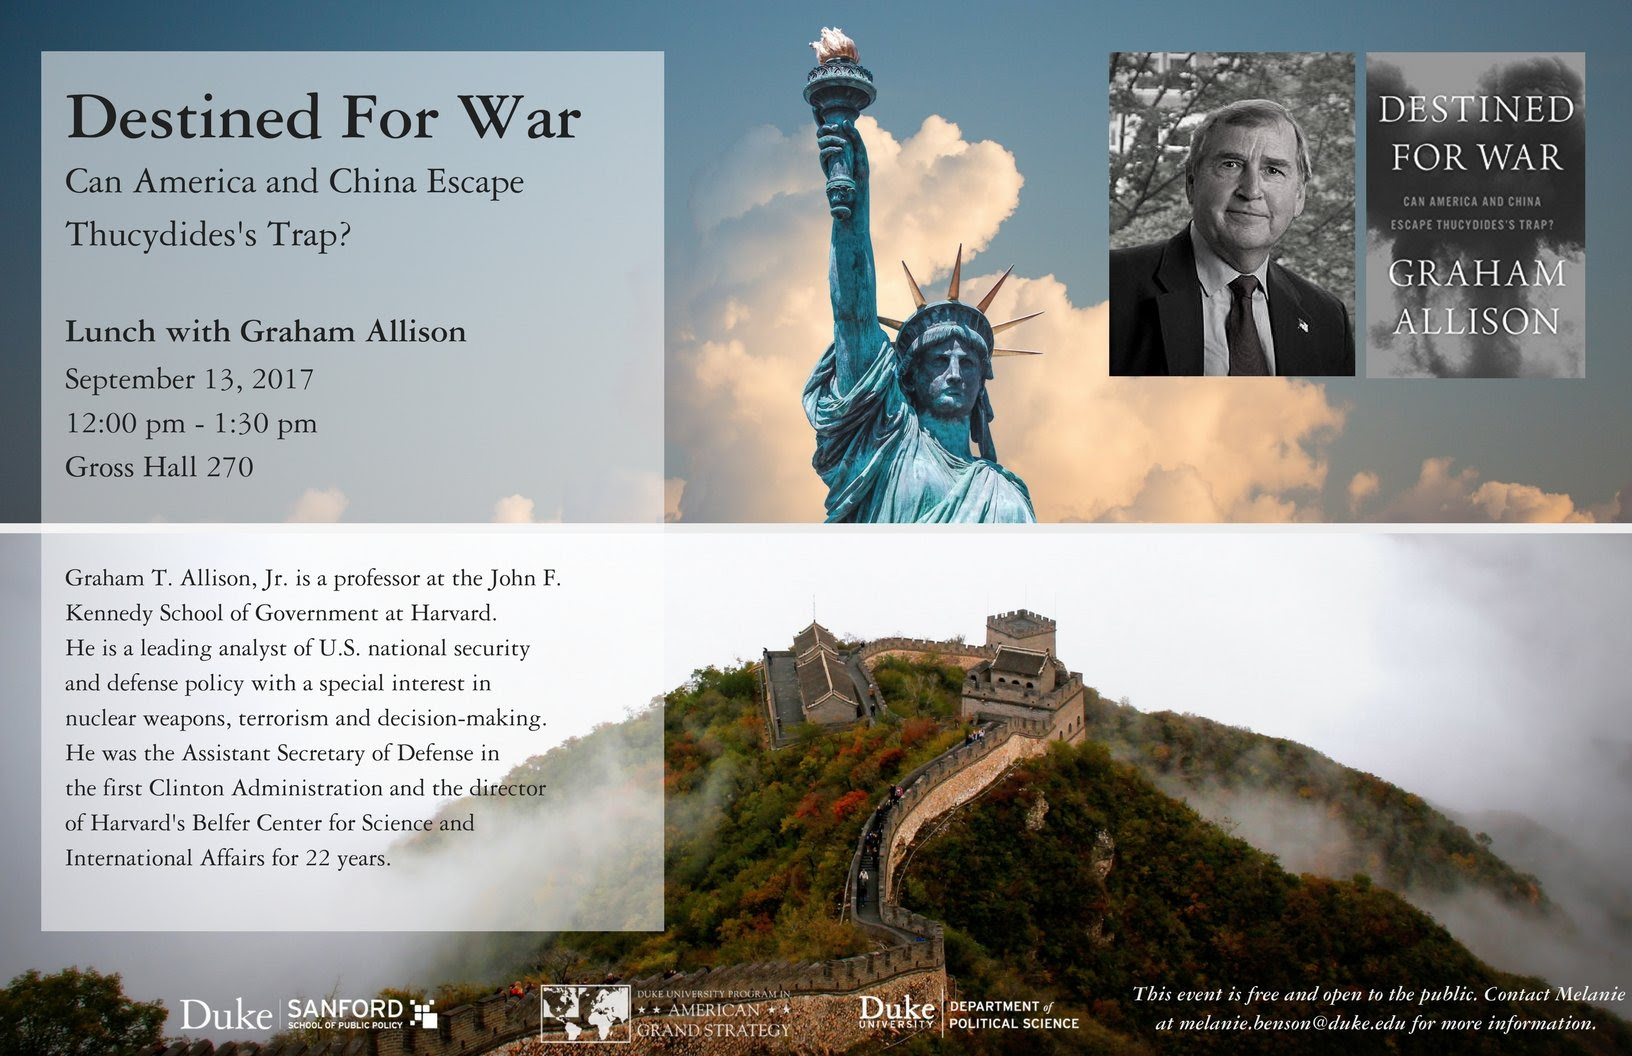 Destined for War: Can America and China Escape Thucydides's Trap? Lunch with Graham Allison @ Gross Hall Room 270 | Durham | North Carolina | United States